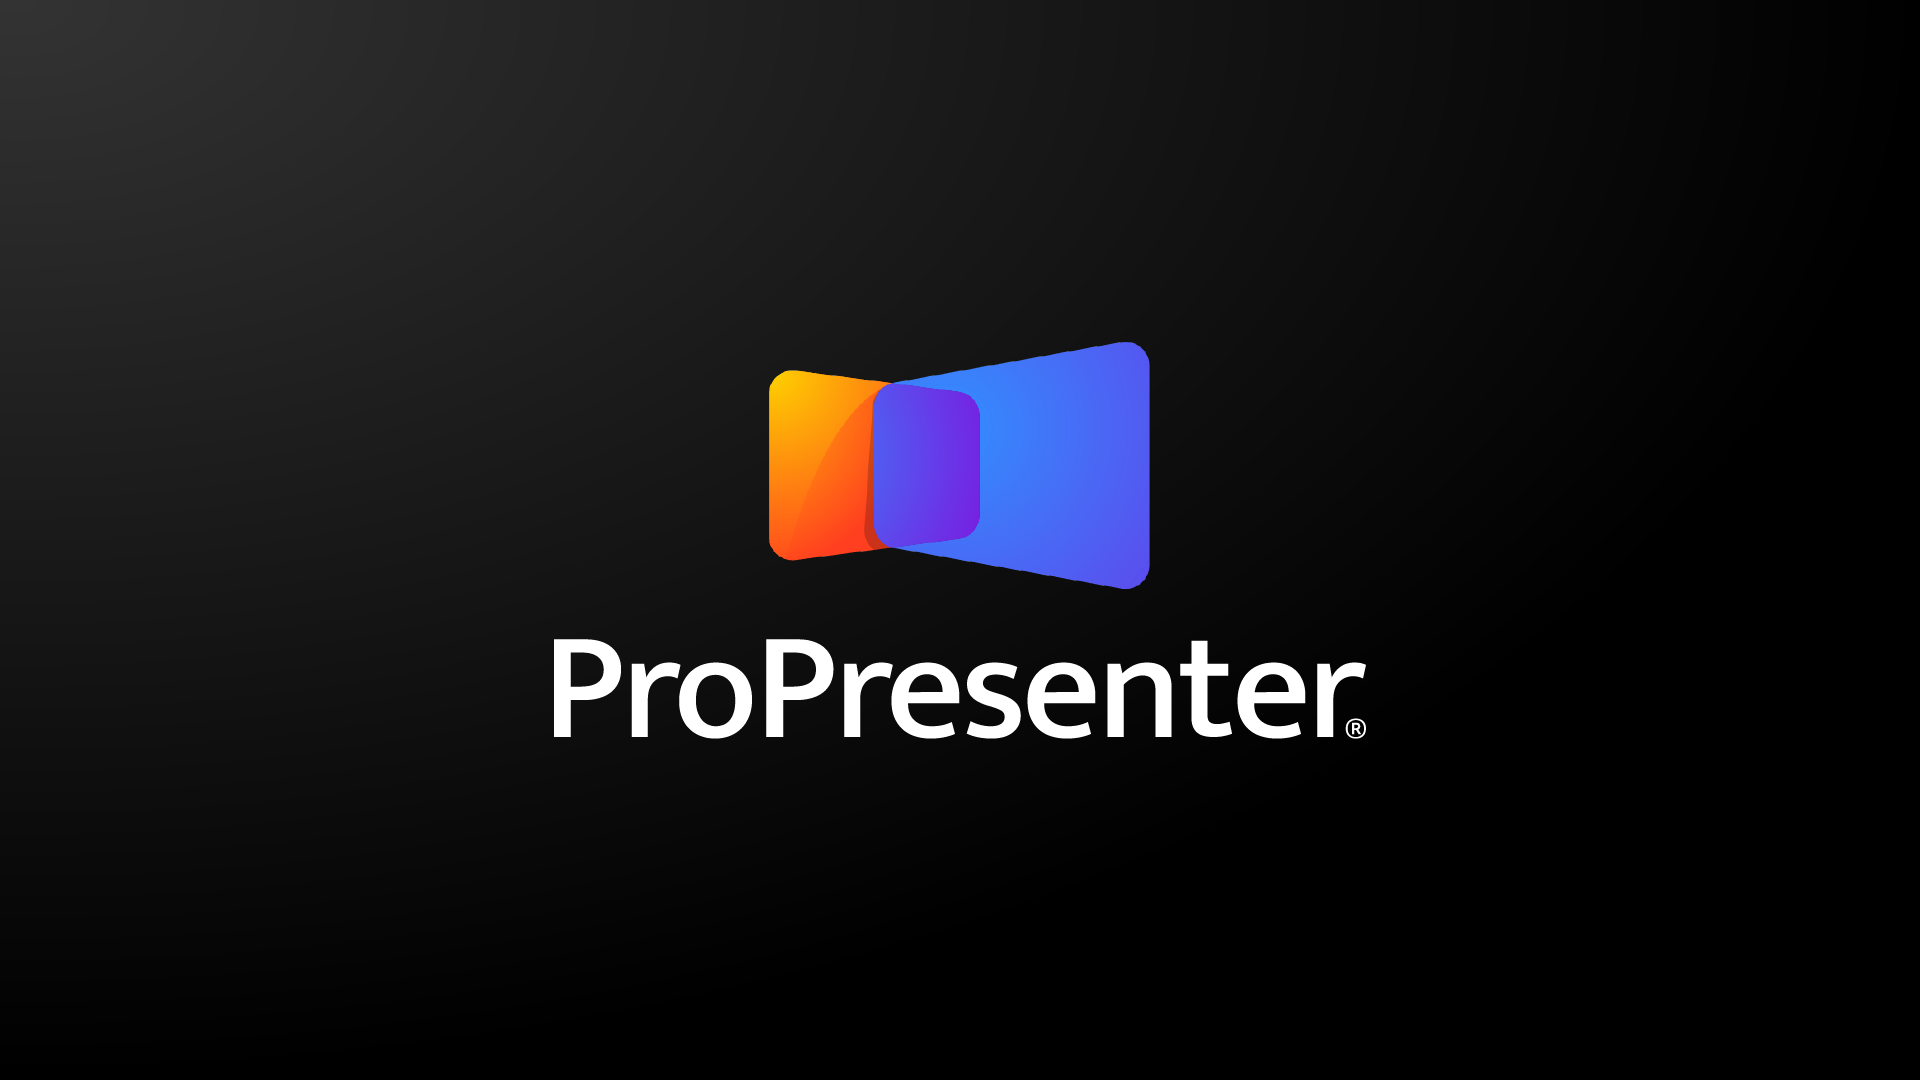 ProPresenter Presentation and Worship Software for lyrics and video